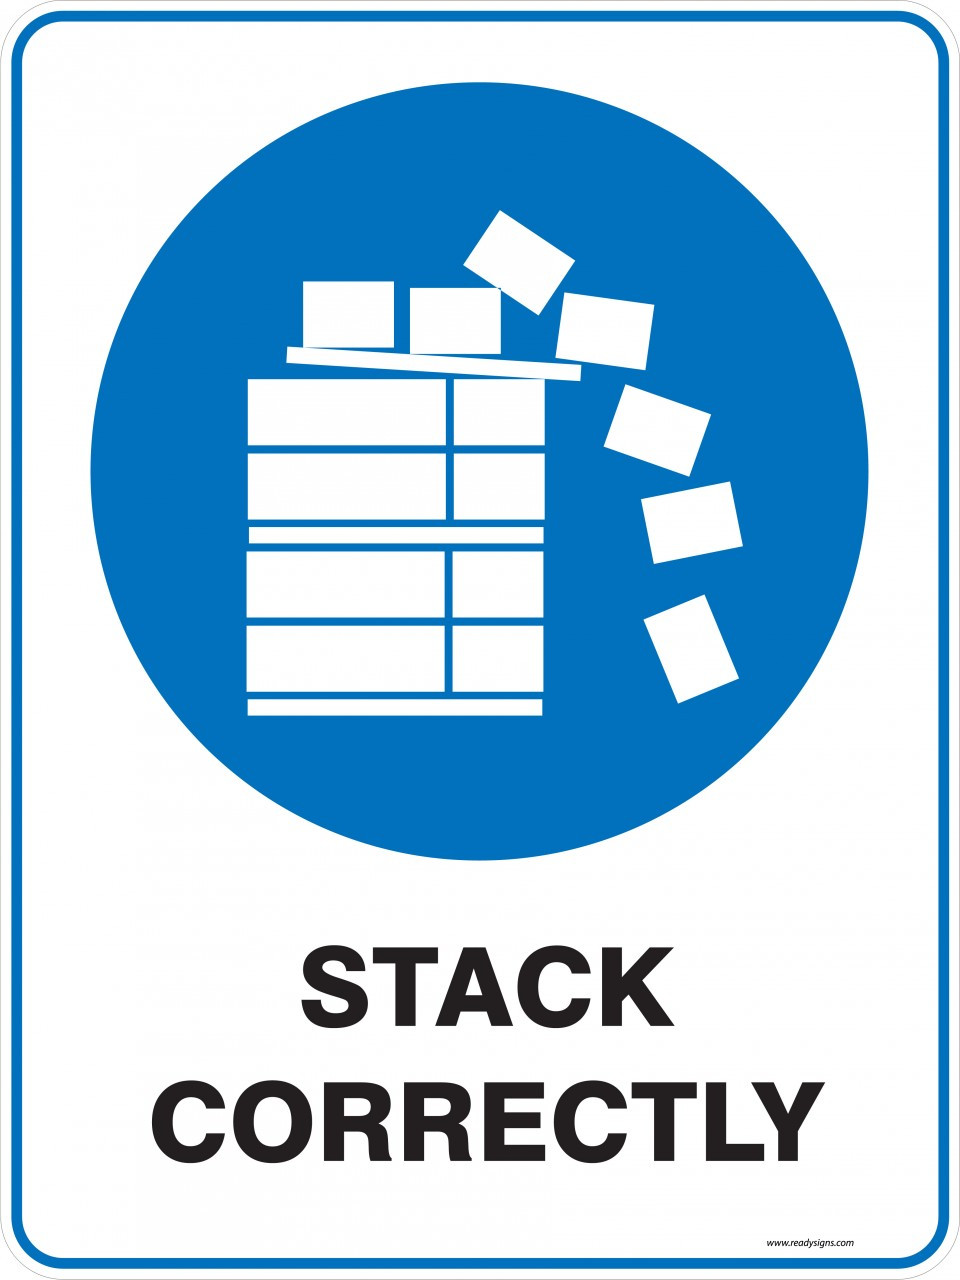 Mandatory Sign  Stack Correctly  Ready Signs. Hemiparesis Signs Of Stroke. Wall Art Sticker Signs Of Stroke. Brest Cancer Signs. Inch Conversion Signs. 2015 Signs. Dumps Signs. Mrs Signs. Fresh Cut Flower Signs